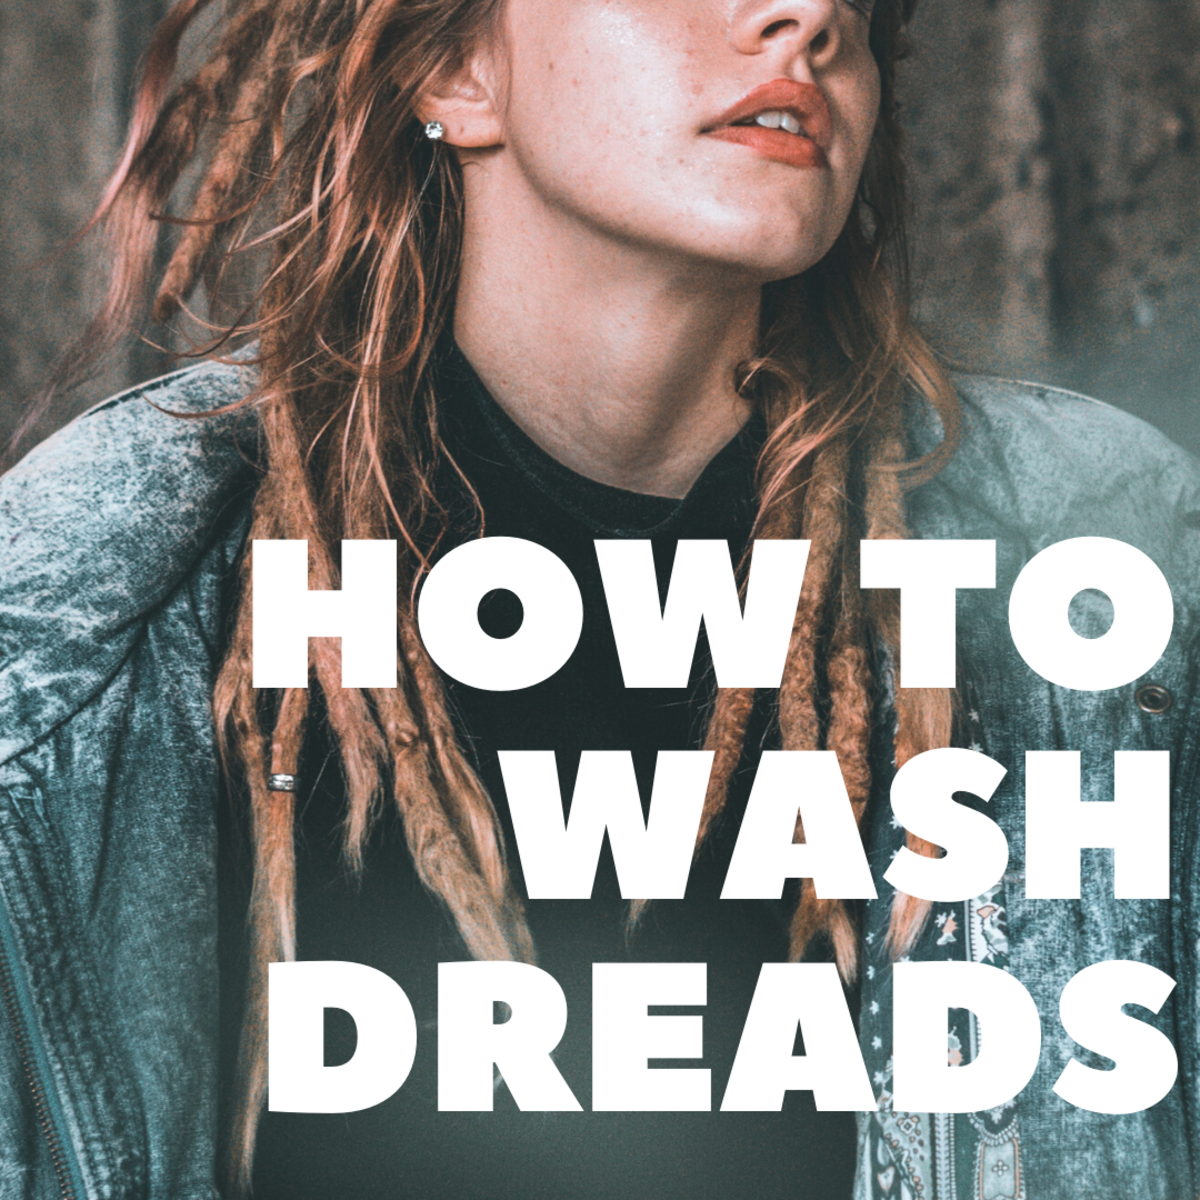 If you have hair like mine, this guide will help you learn which products and soaps are best for your dreads.